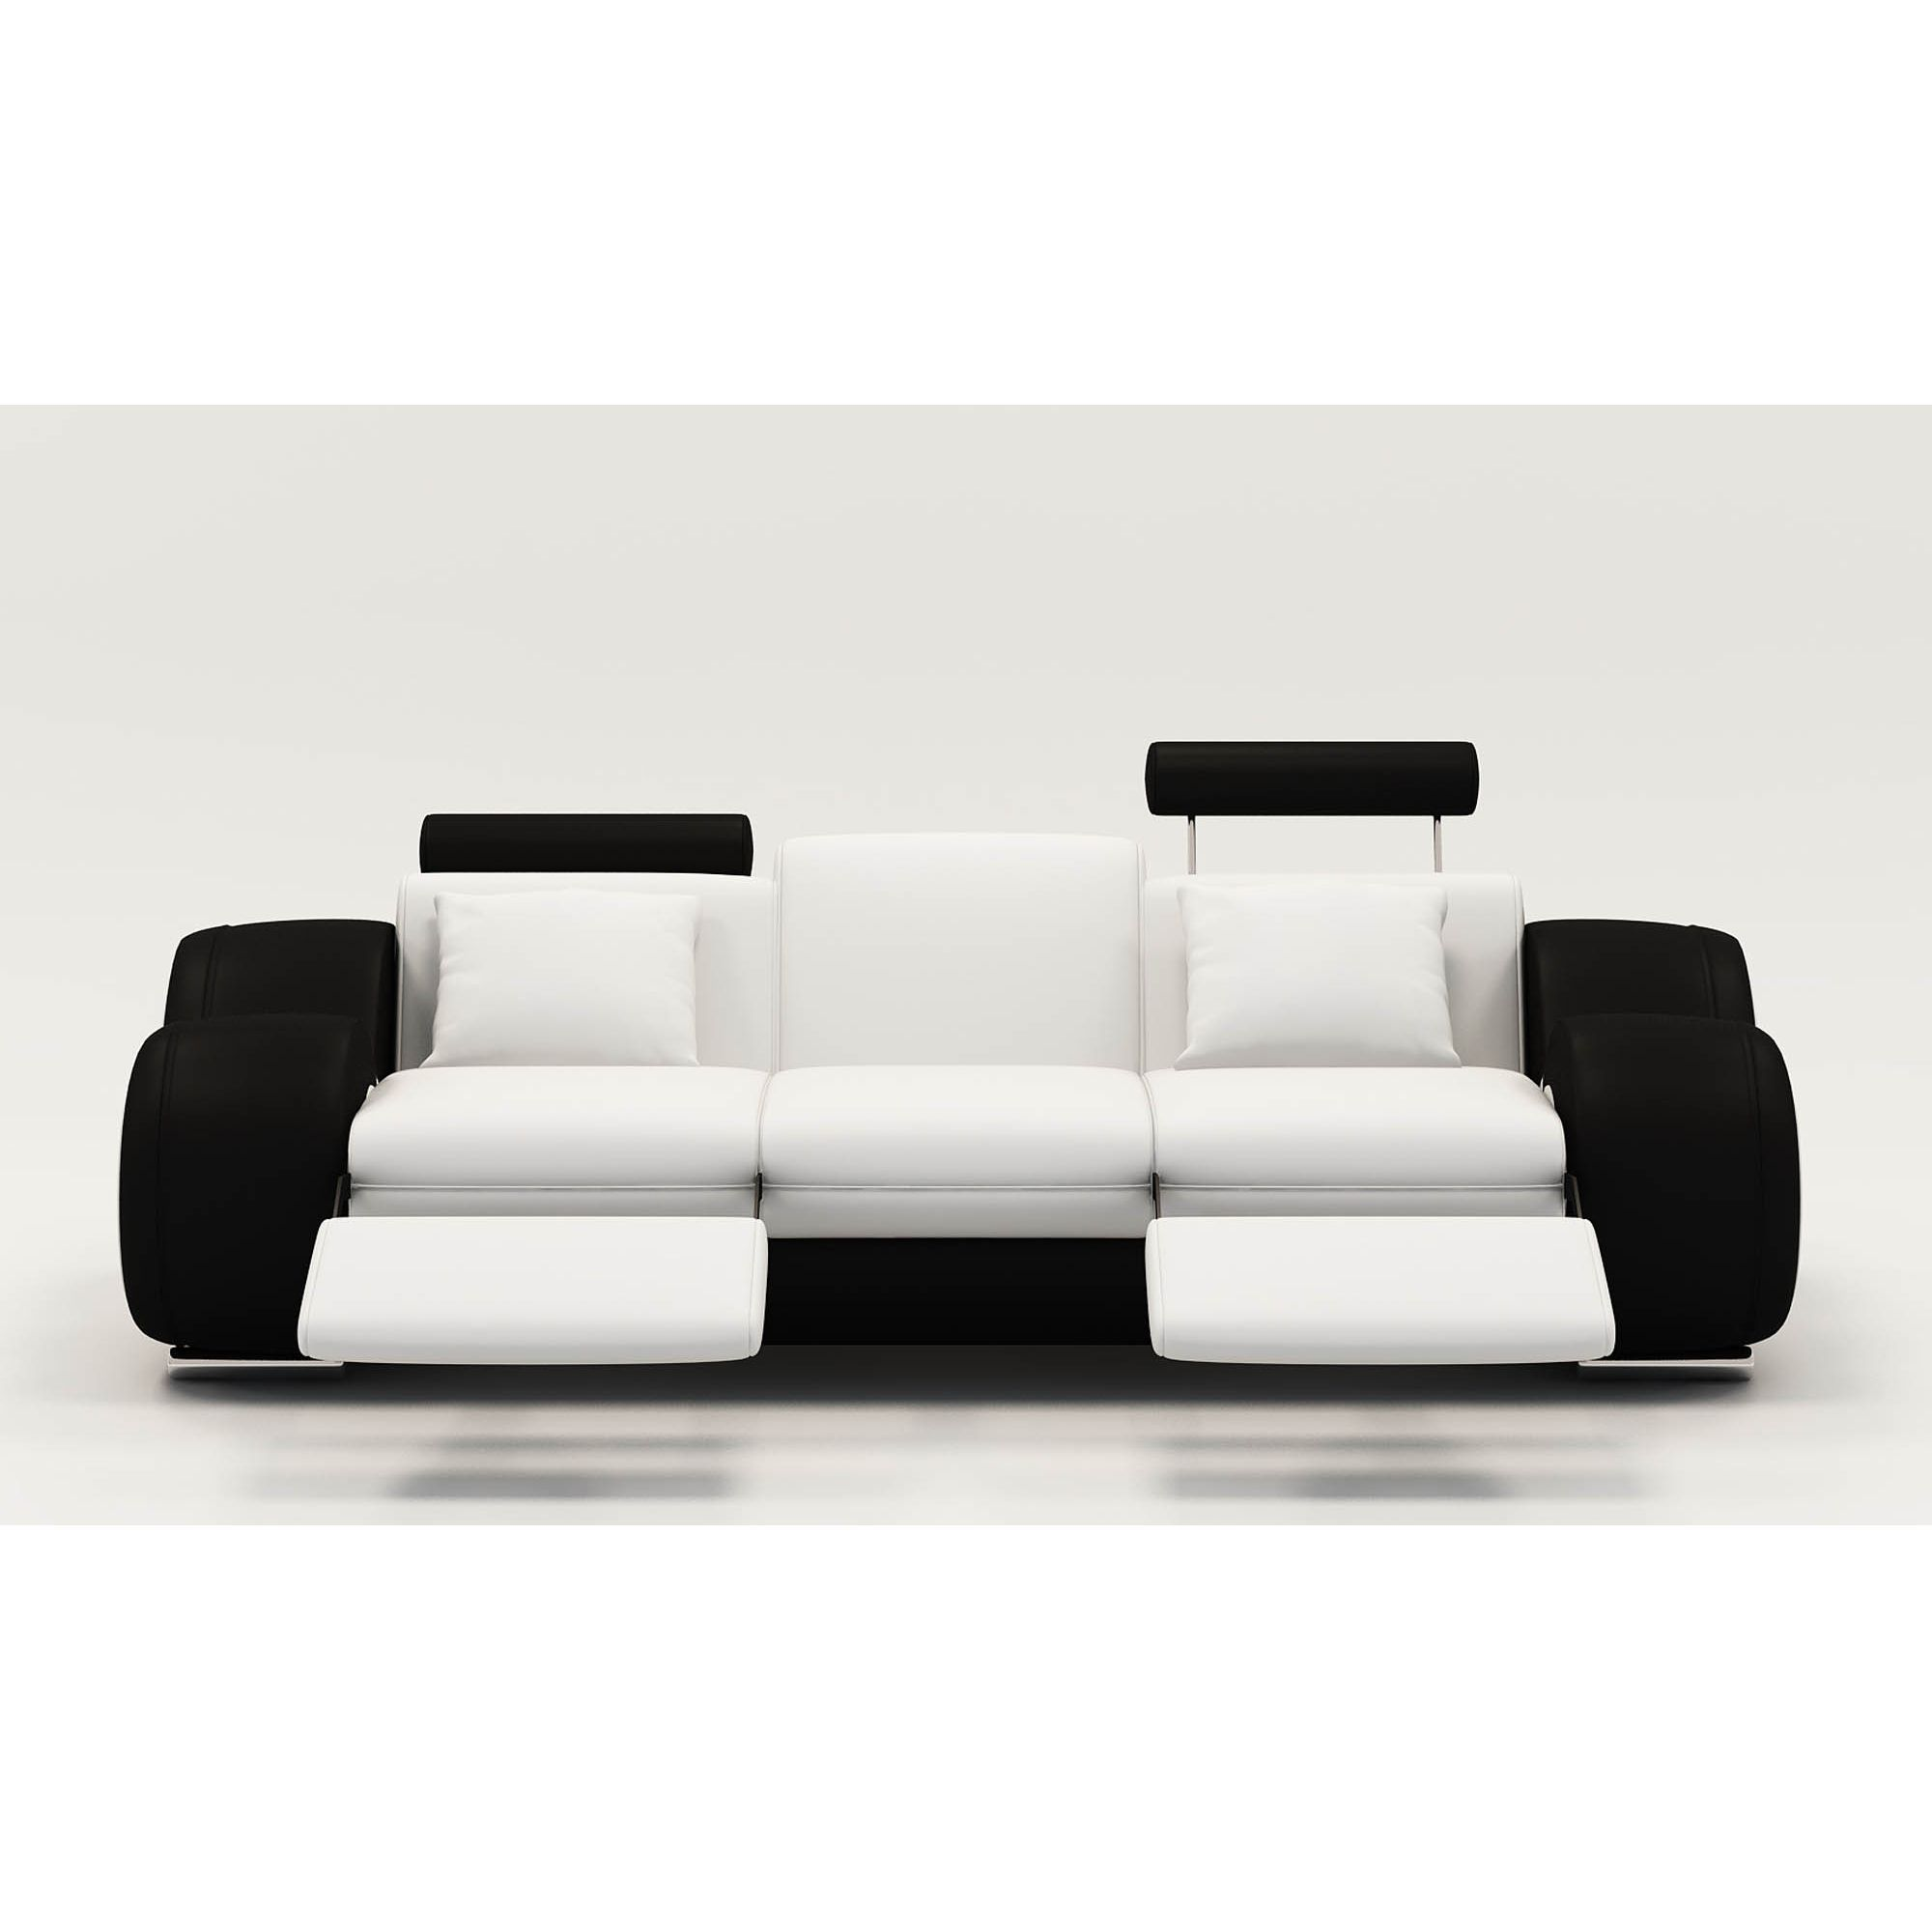 deco in paris canape design 3 places cuir blanc et noir. Black Bedroom Furniture Sets. Home Design Ideas